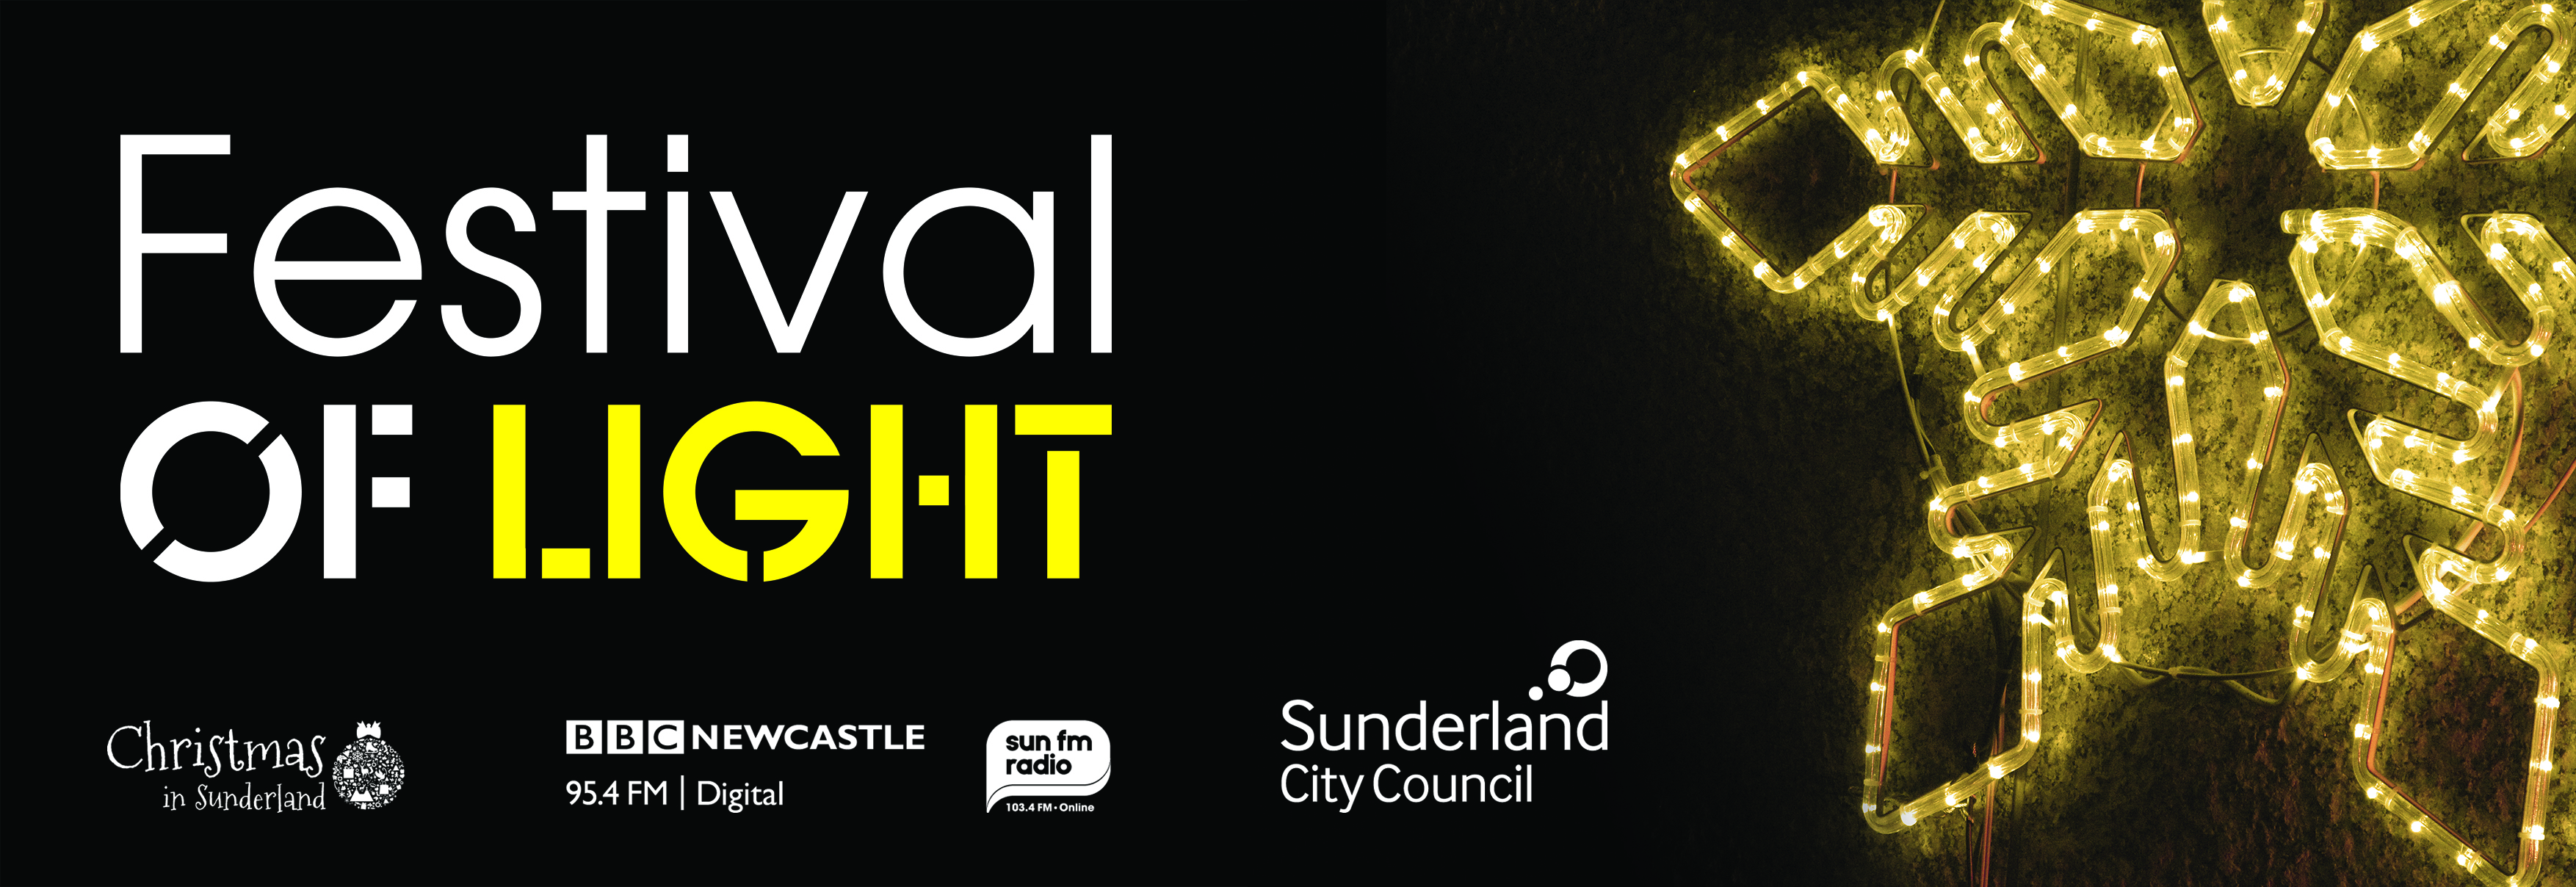 Prepare for the winter nights in Sunderland to be brightened by the Festival of Light  image